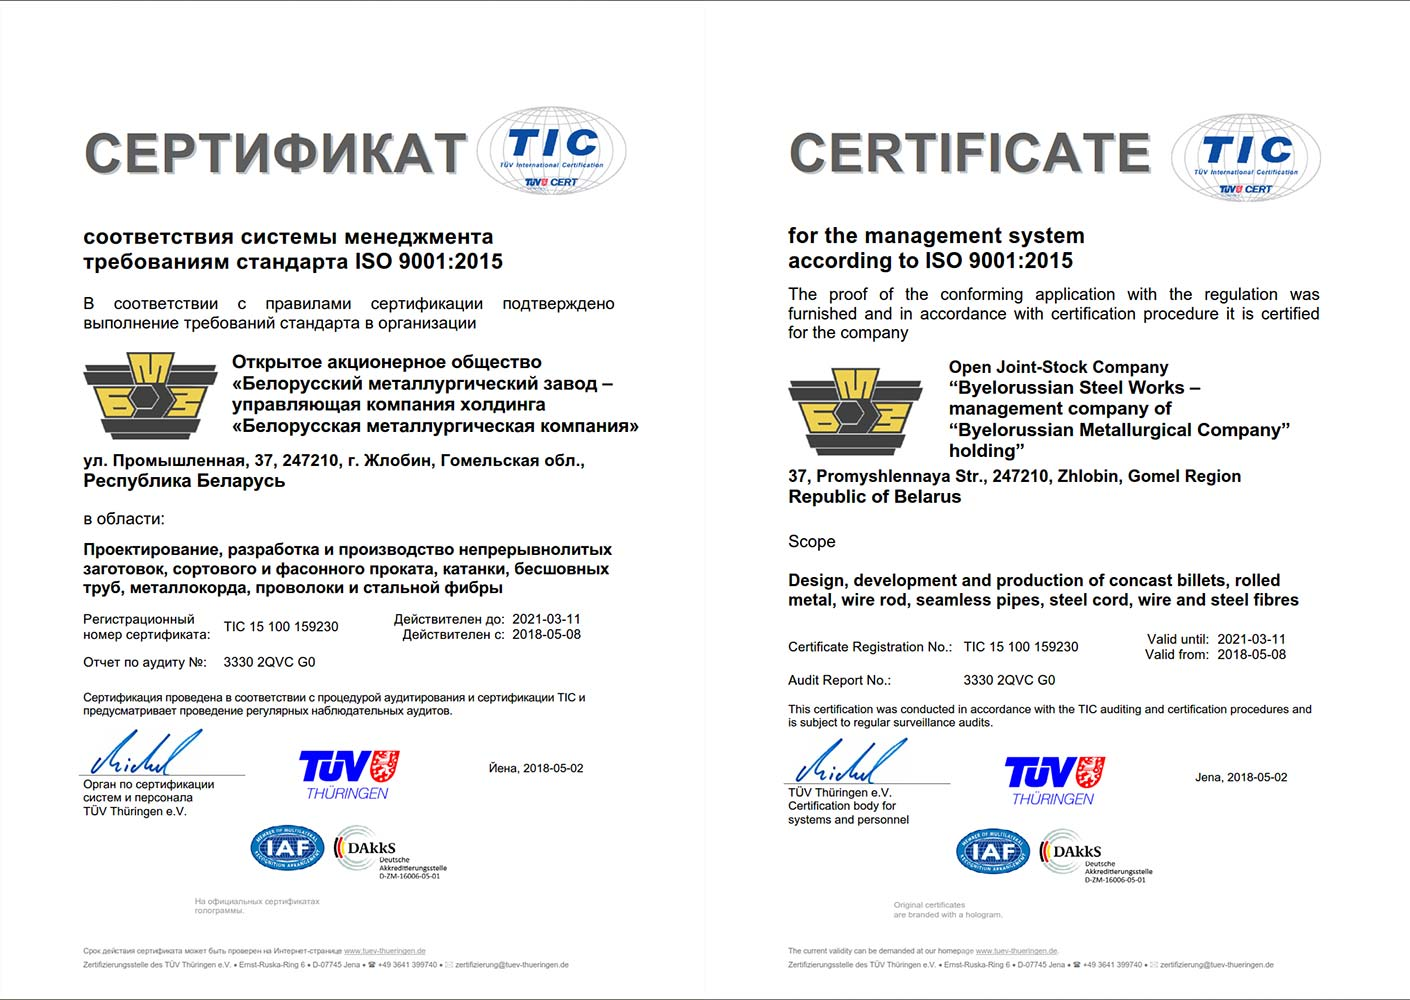 Certificate № TIC 15 100 159230 (TUV Thuringen e.V.) of QMS conformity with the requirements of international standard ISO 9001:2008 to design, develop and produce concast billet, rolled product, wire rod, seamless pipes, steel cord, wire and steel fiber